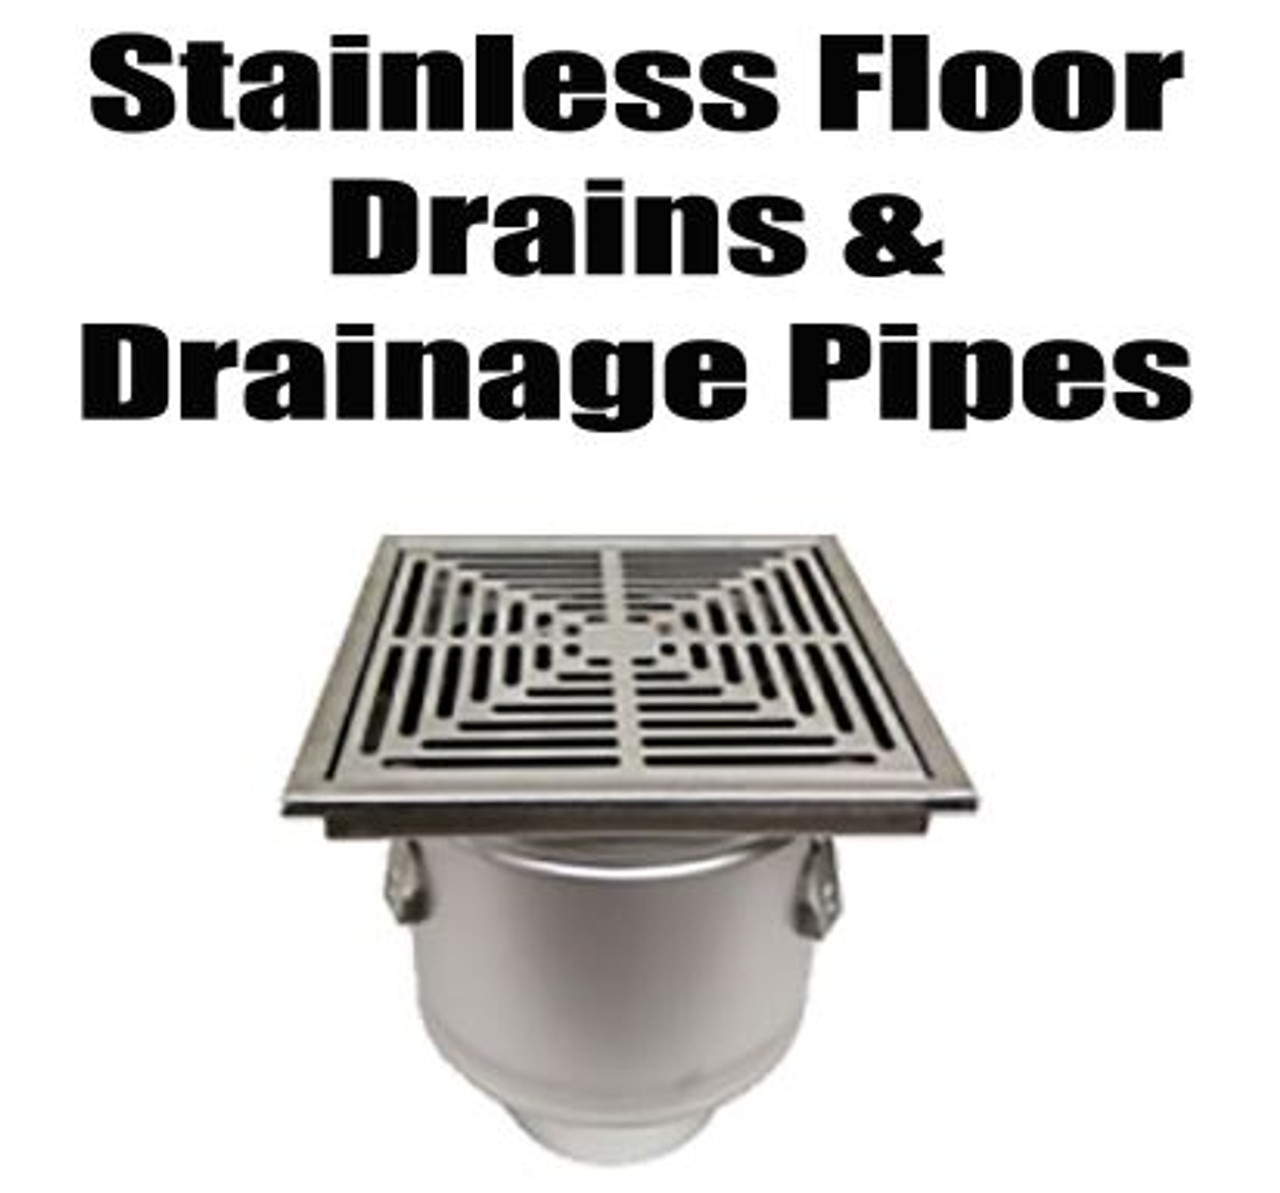 Stainless Floor Drains and Drainage Pipes